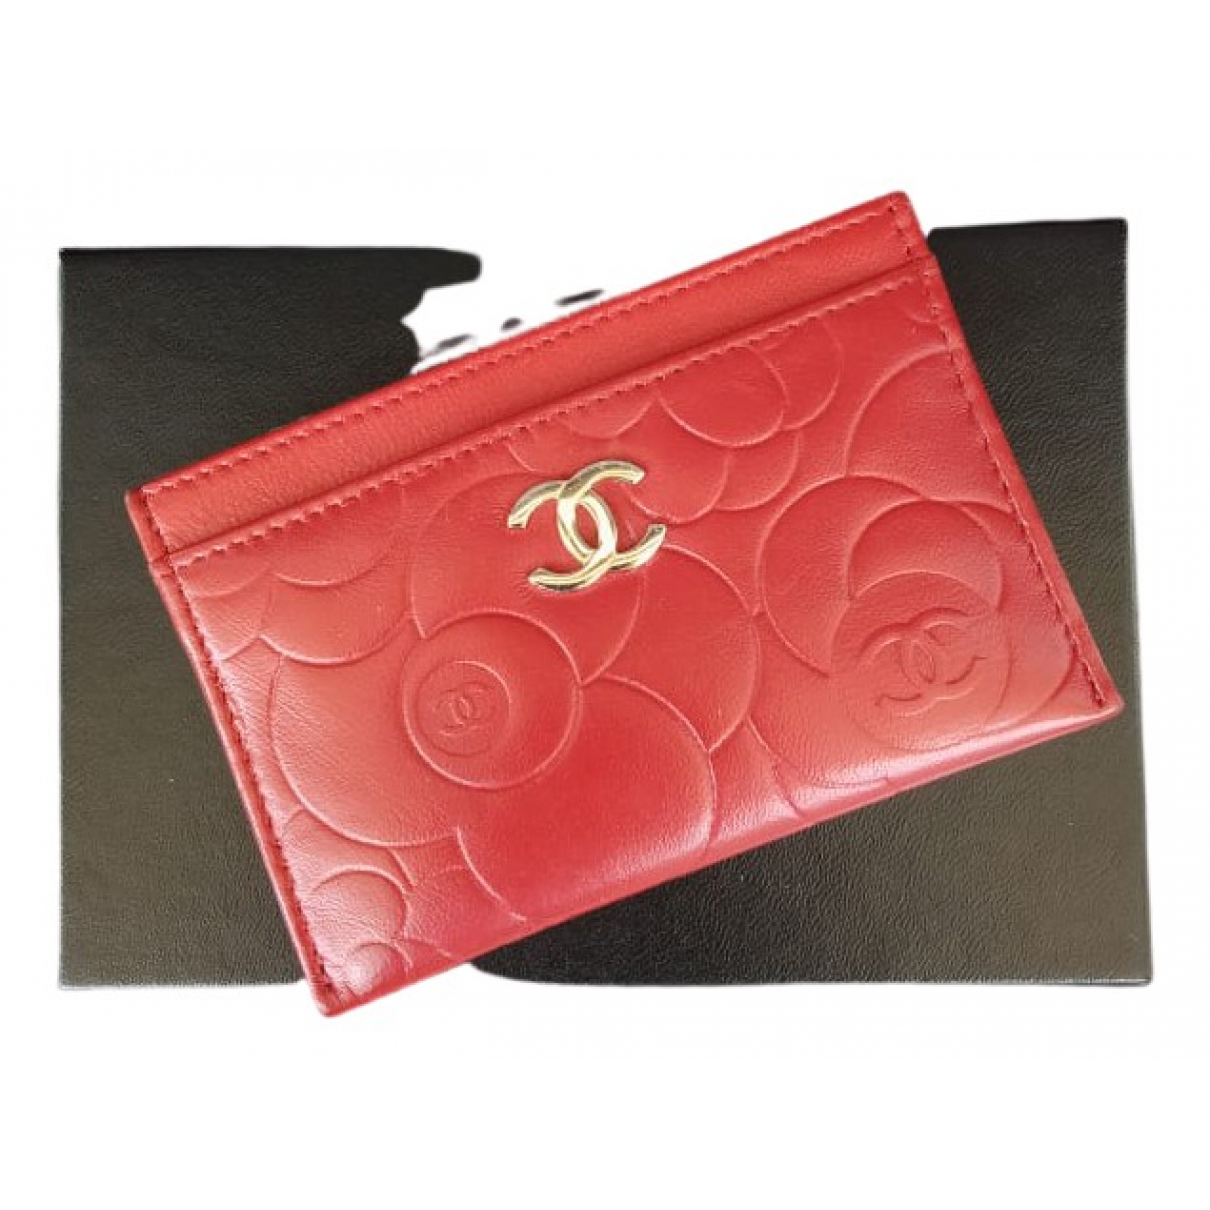 Chanel N Red Leather Purses, wallet & cases for Women N